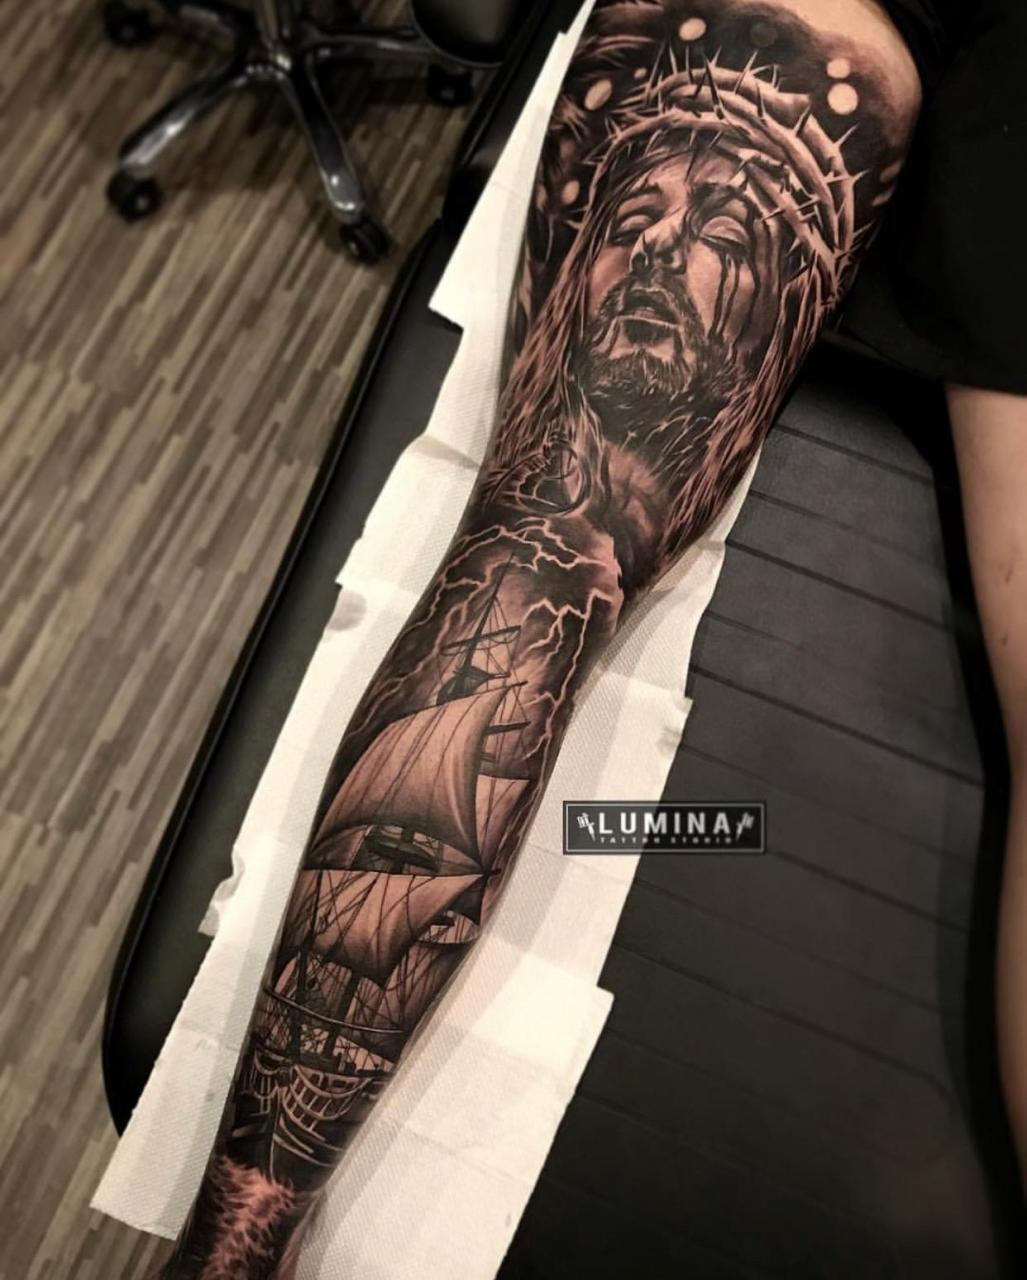 Back of my leg sleeve done by Dode Pras out of Bali Indonesia